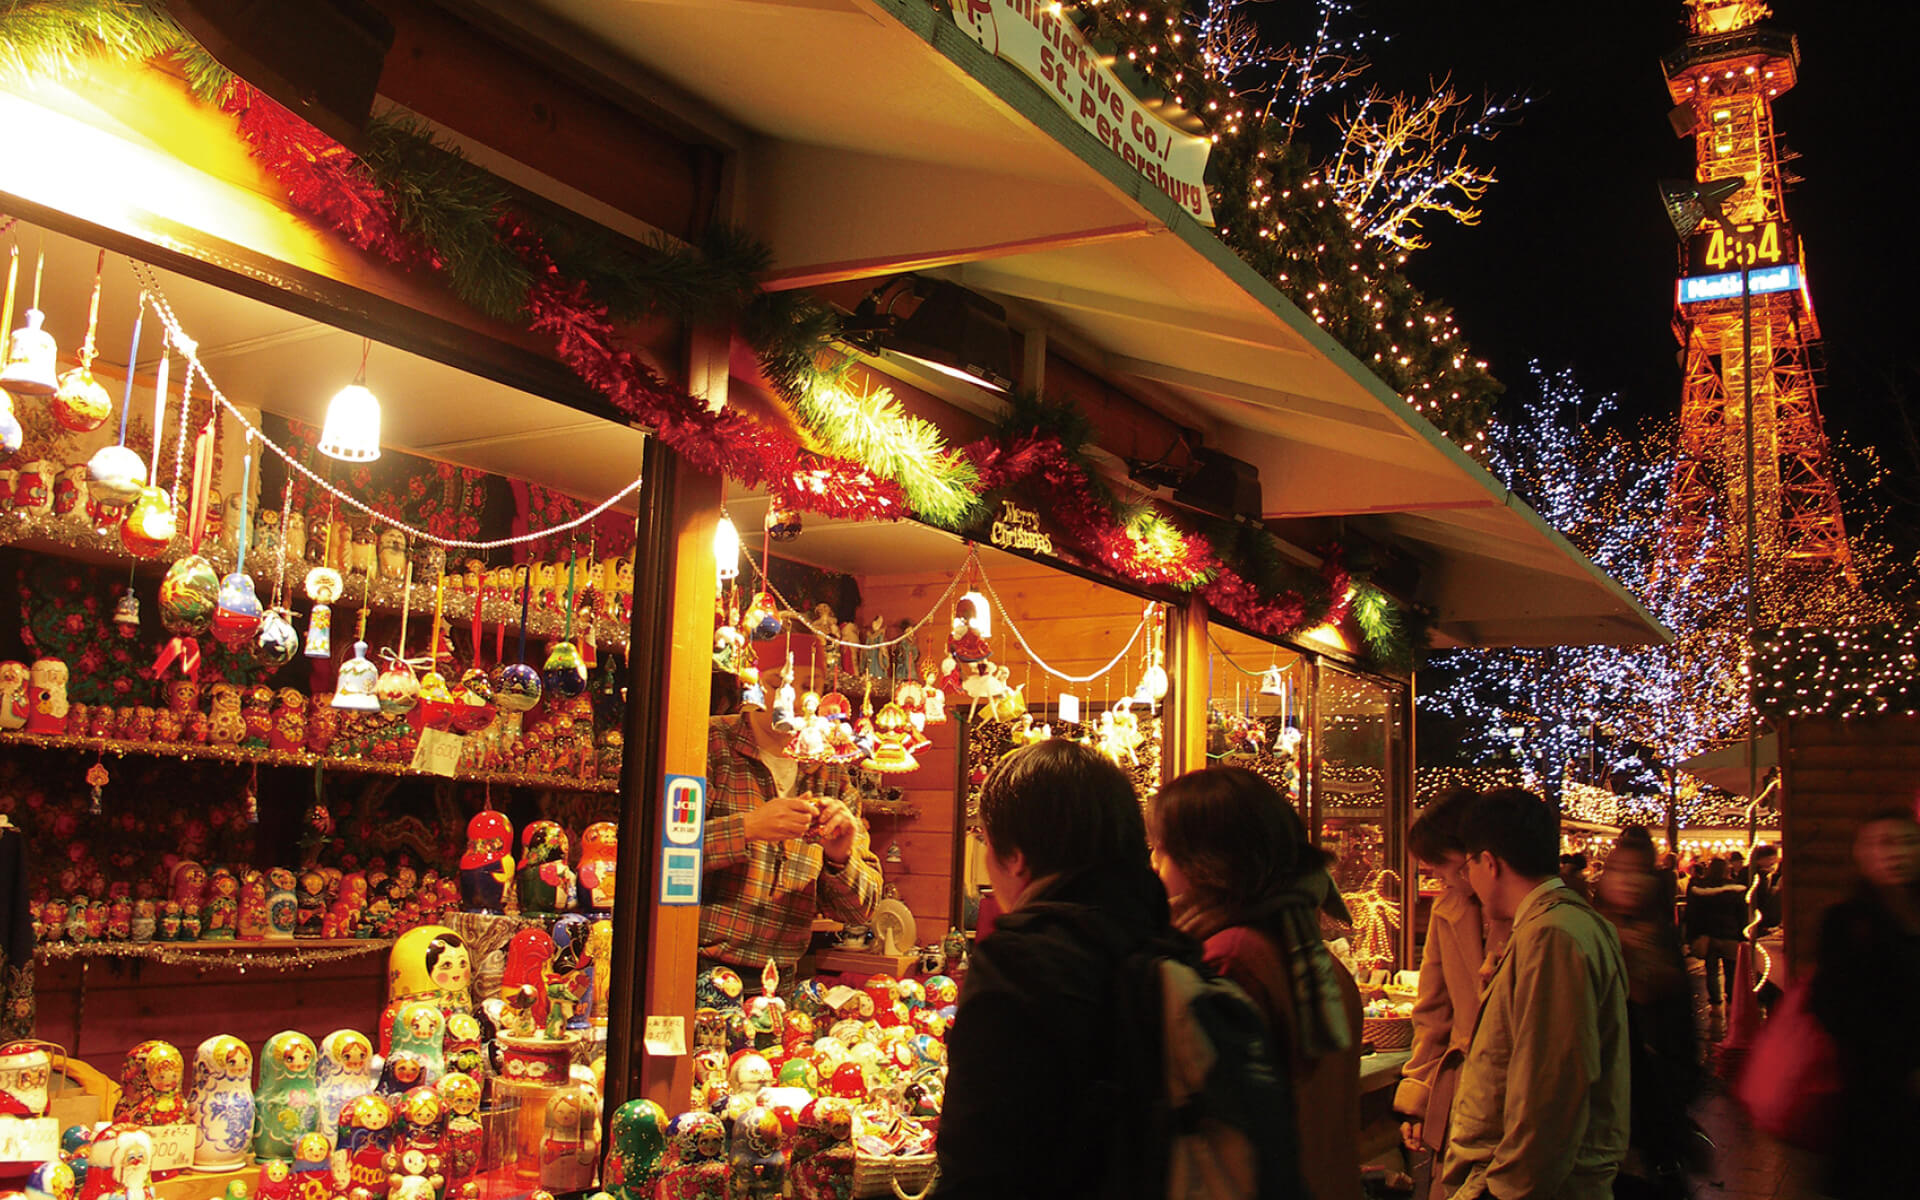 German Christmas Market in Sapporo